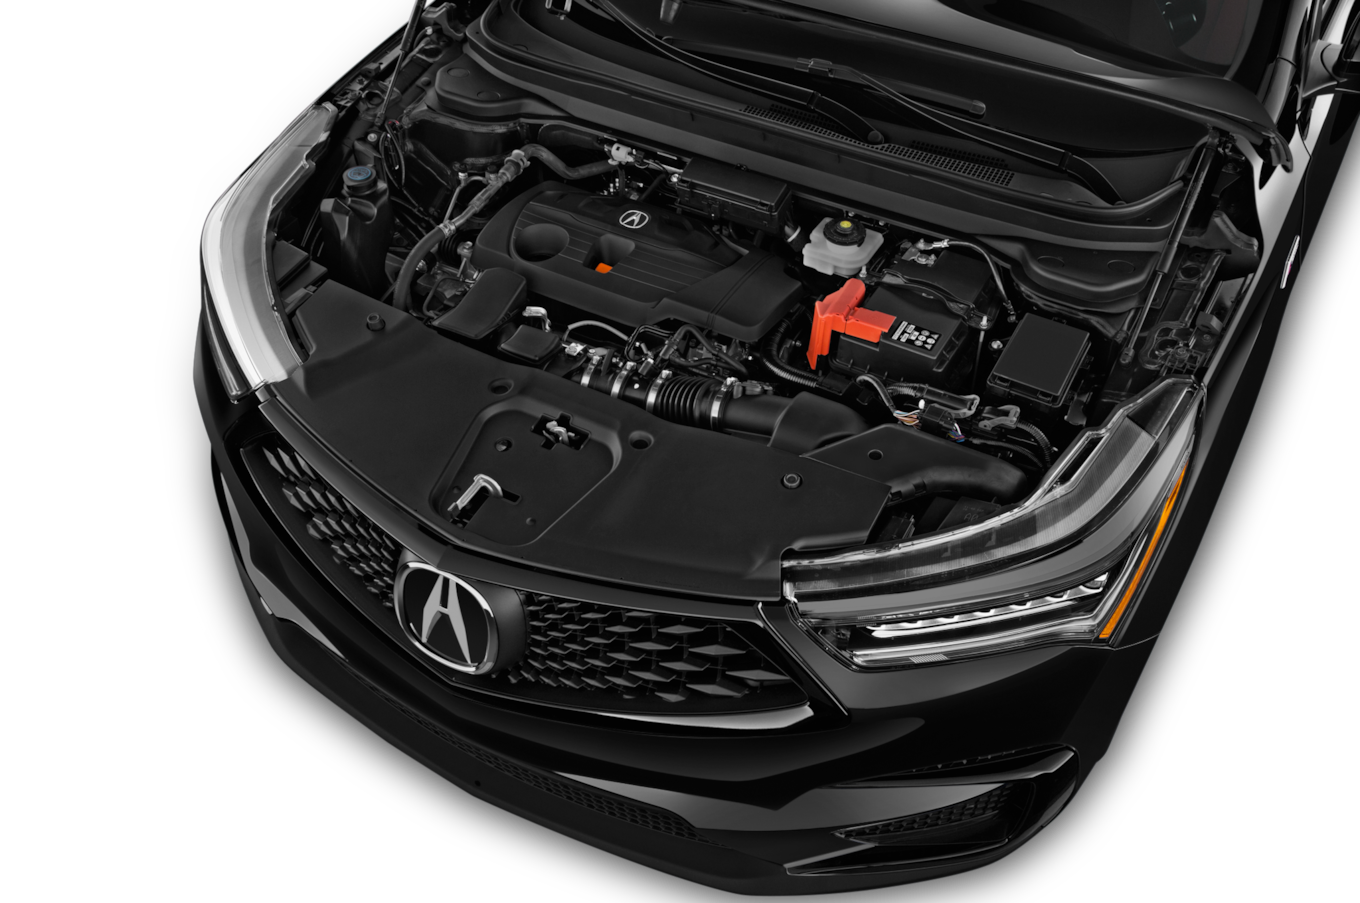 64 The 2019 Acura Rdx Engine Interior